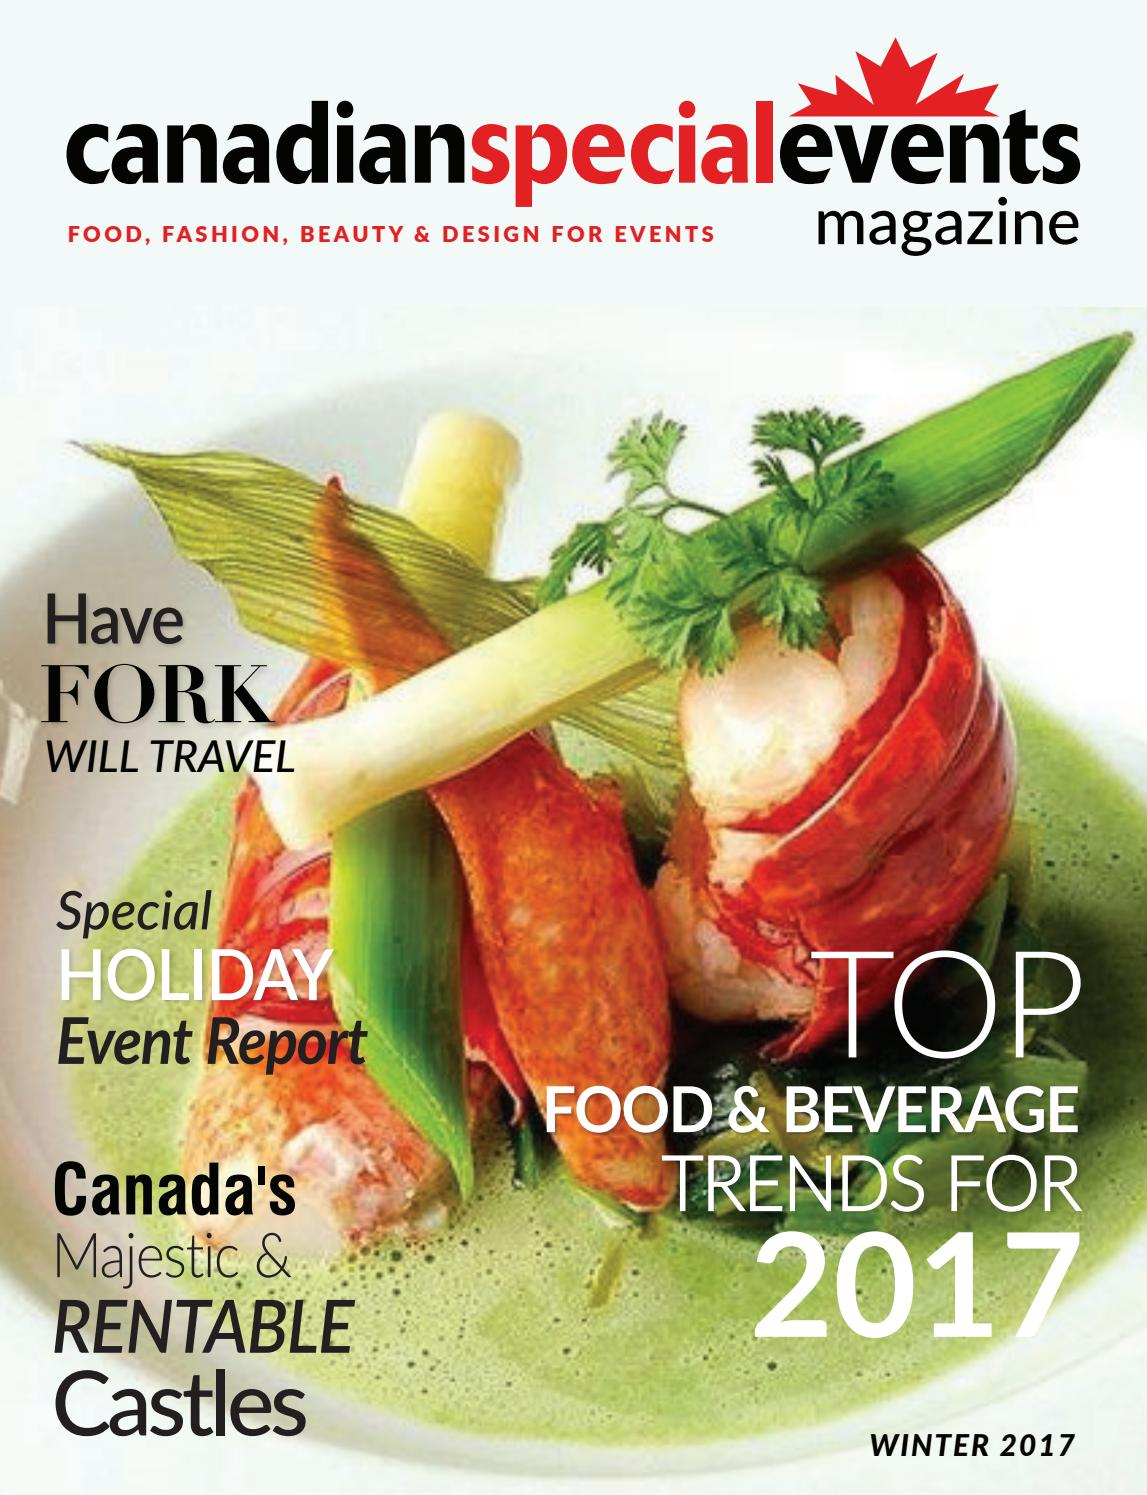 LCBO Food & Drink Magazine - Winter 2017 Subscriptions